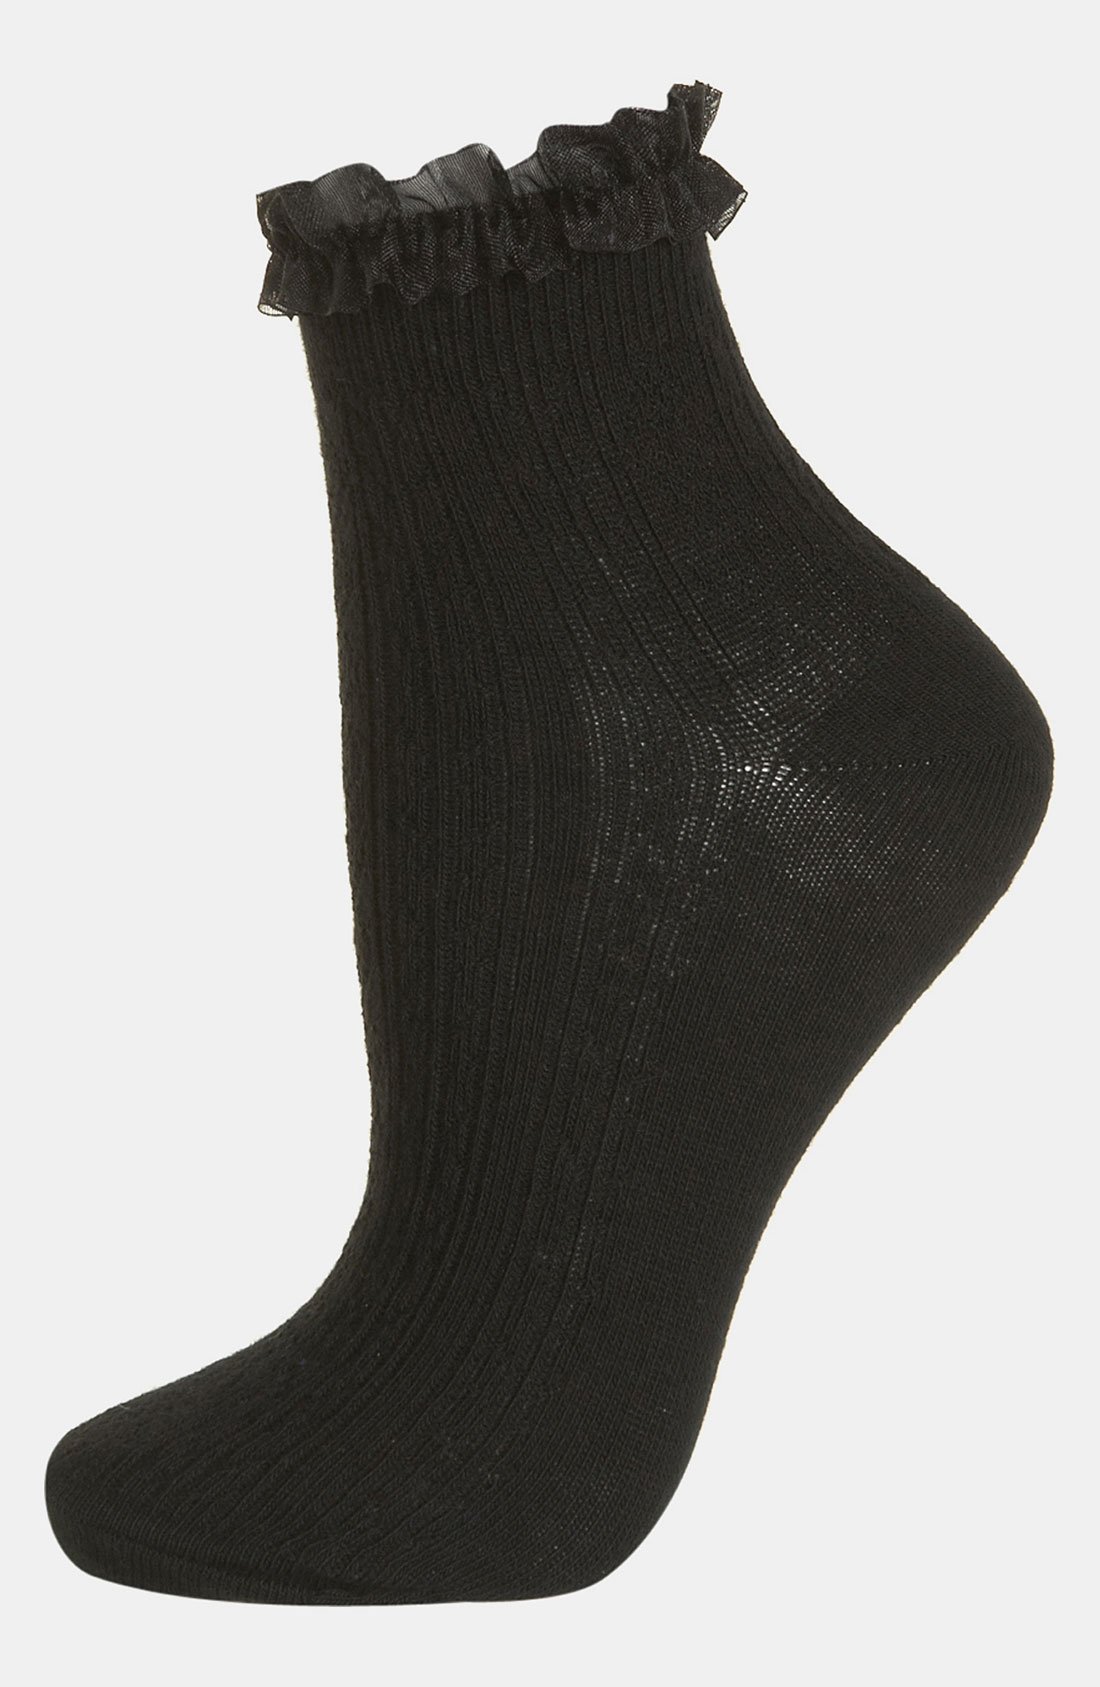 Topshop Black Lace Trim Ankle Socks in Black | Lyst